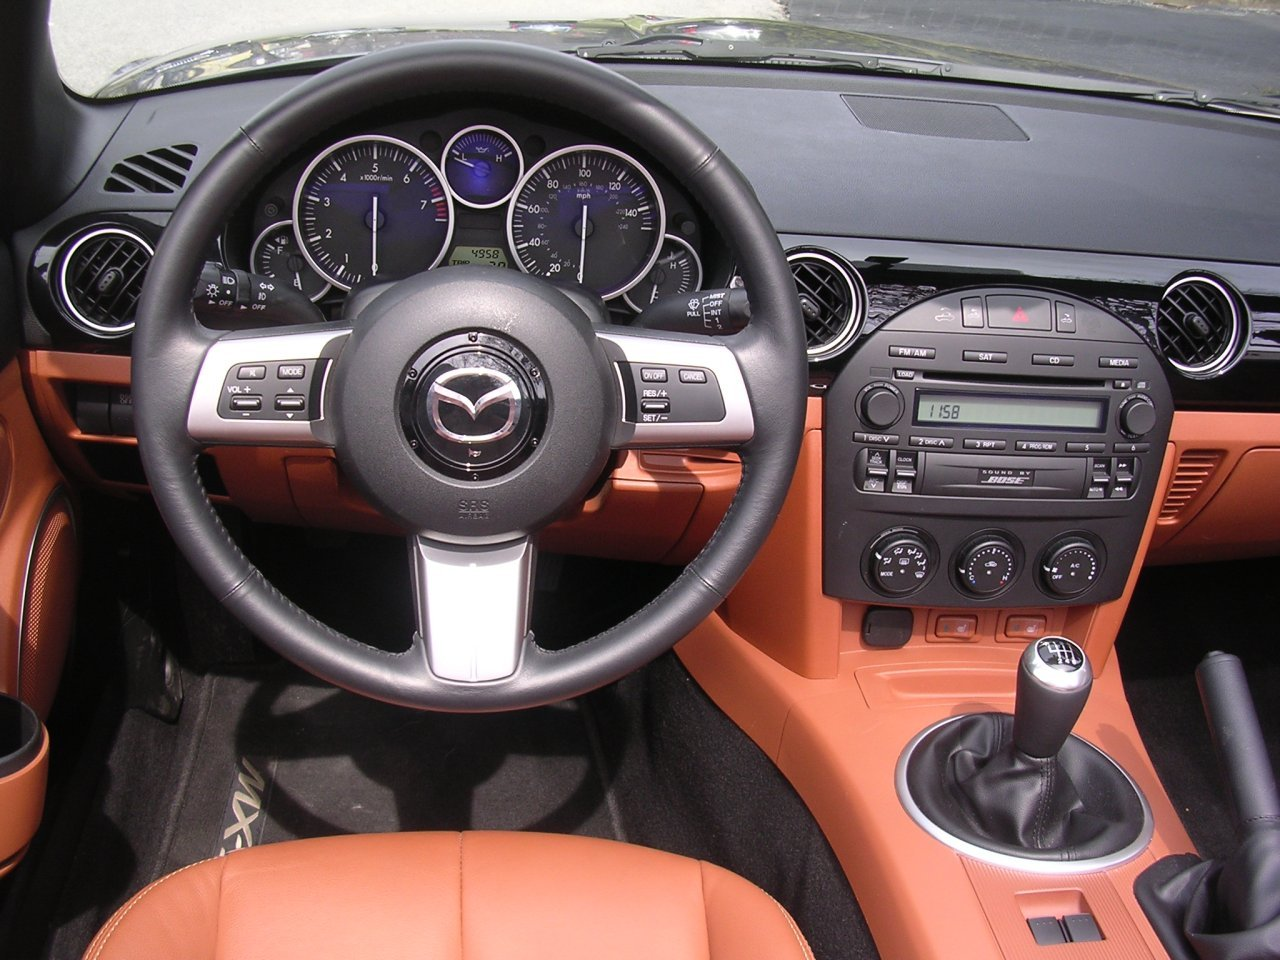 2007 Mazda MX-5 Miata dash detail. 2007 Mazda MX-5 Miata dashboard